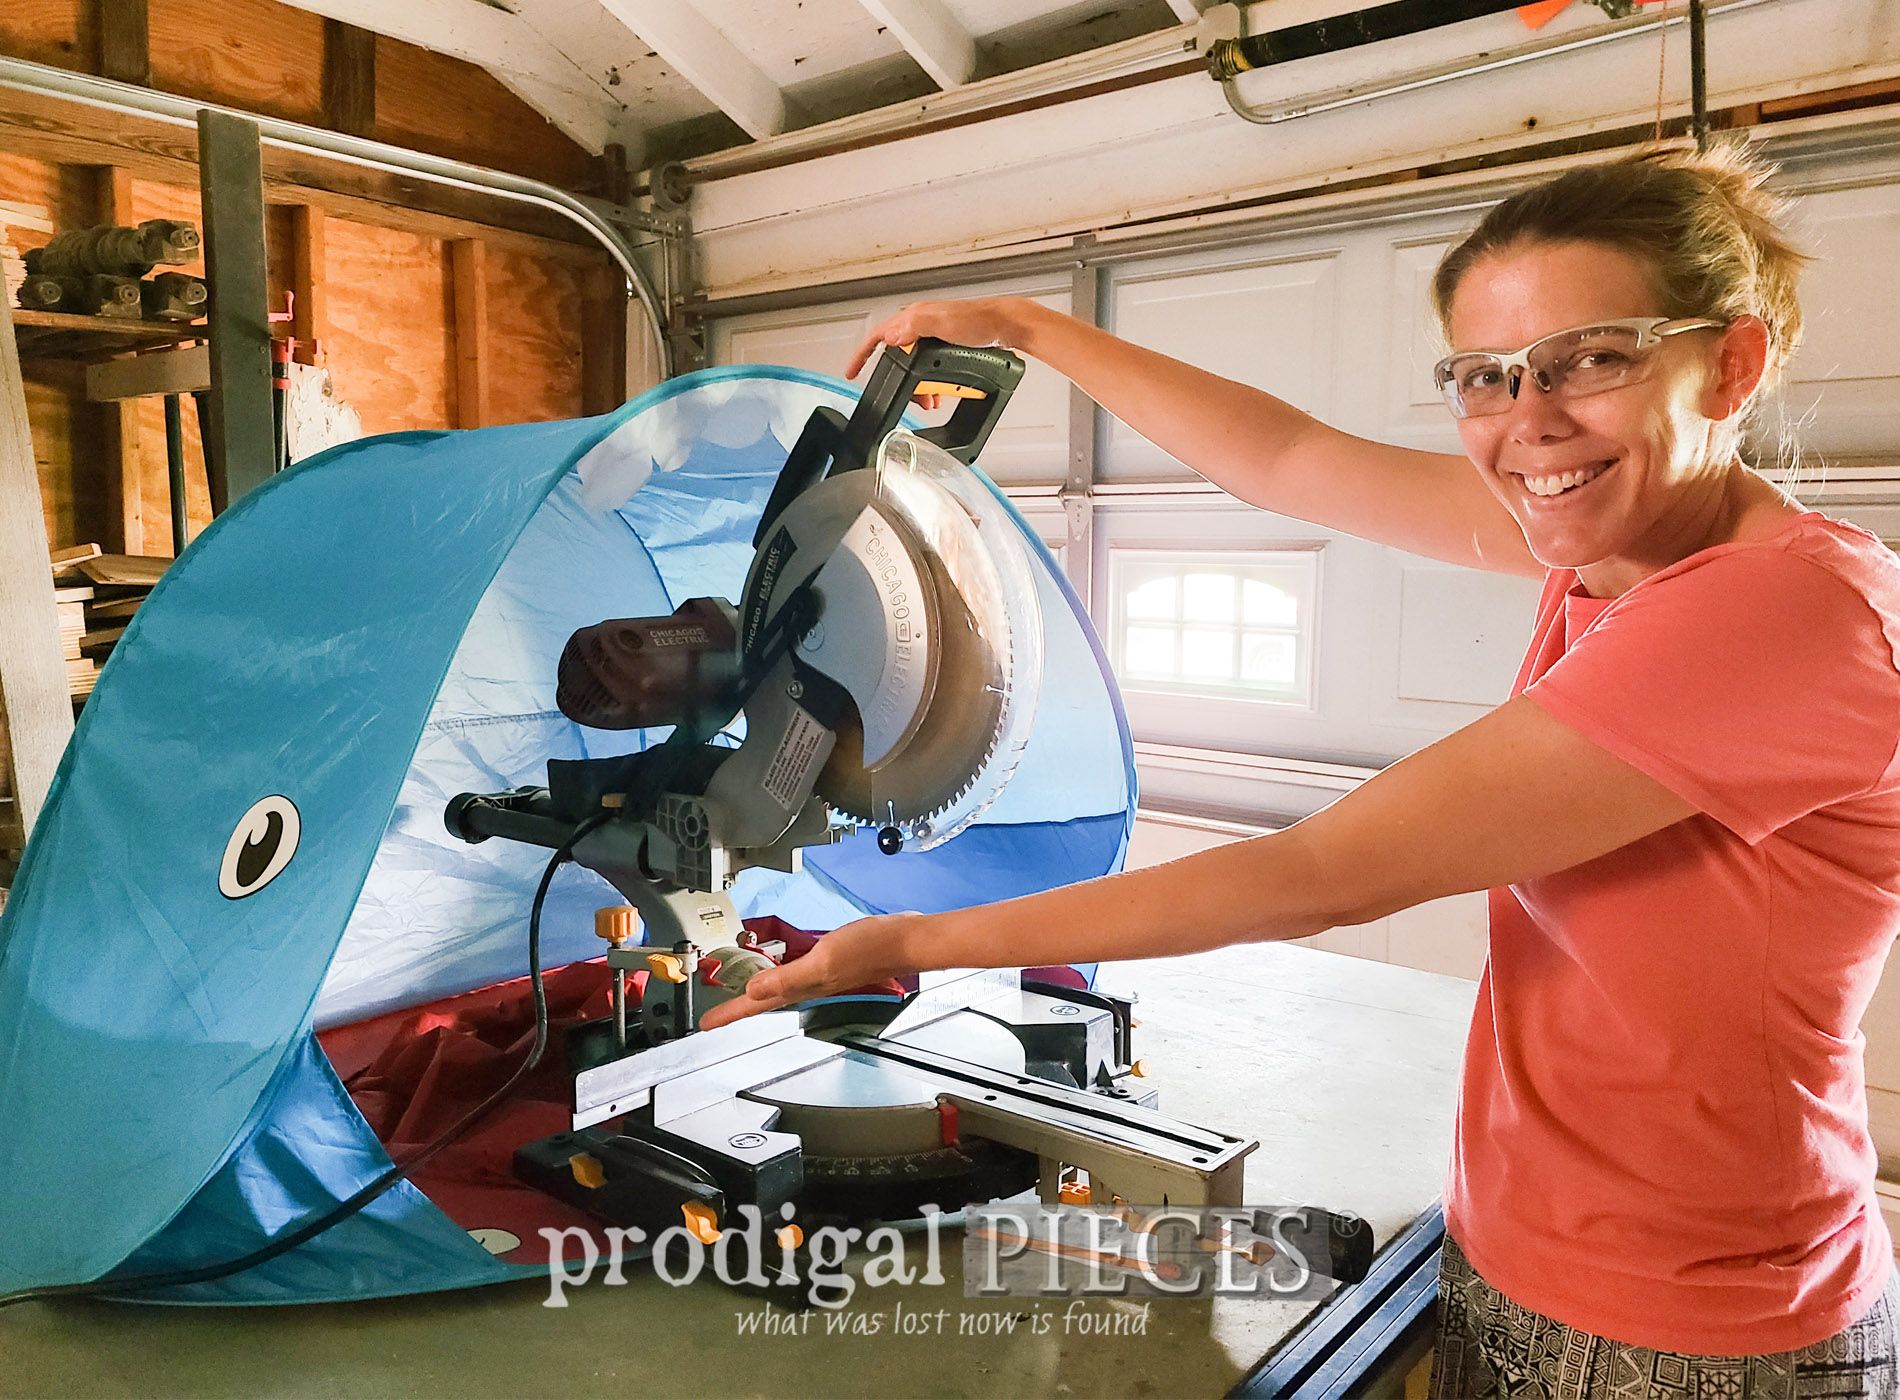 Make your own DIY miter saw hood to collect dust using a baby sun tent | Details at Prodigal Pieces | prodigalpieces.com #prodigalpieces #diy #woodworking #upcycled #tools #toolsoverjewels